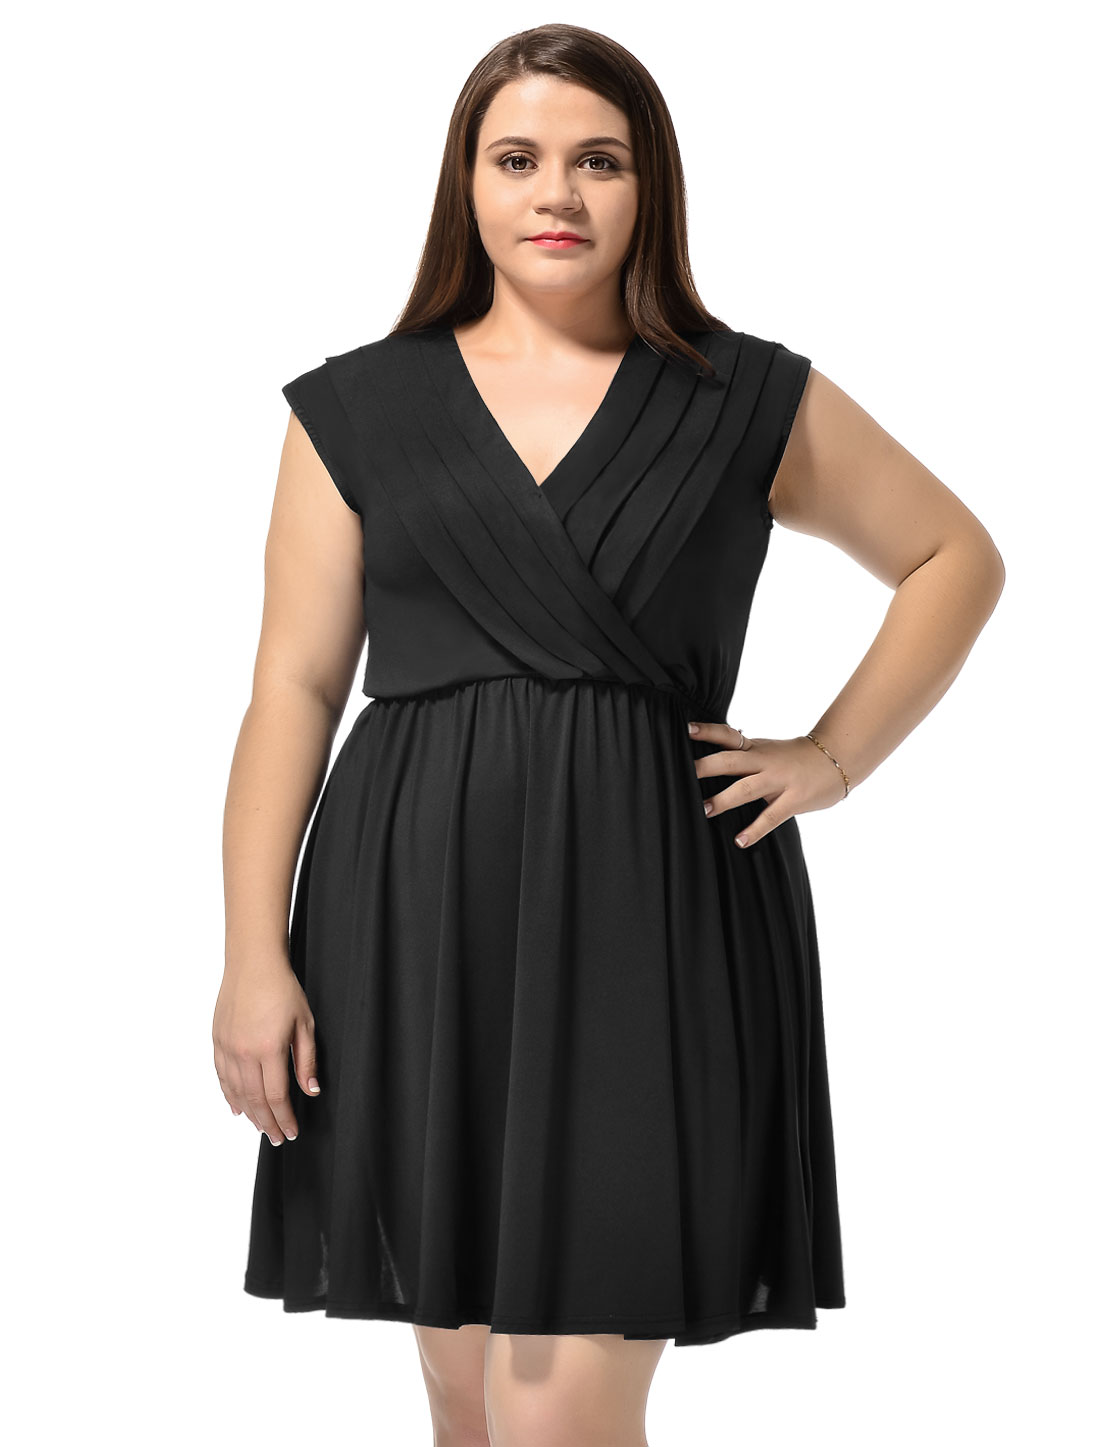 Women Surplice Neckline Cap Sleeves Plus Size A-Line Dress Black 2X